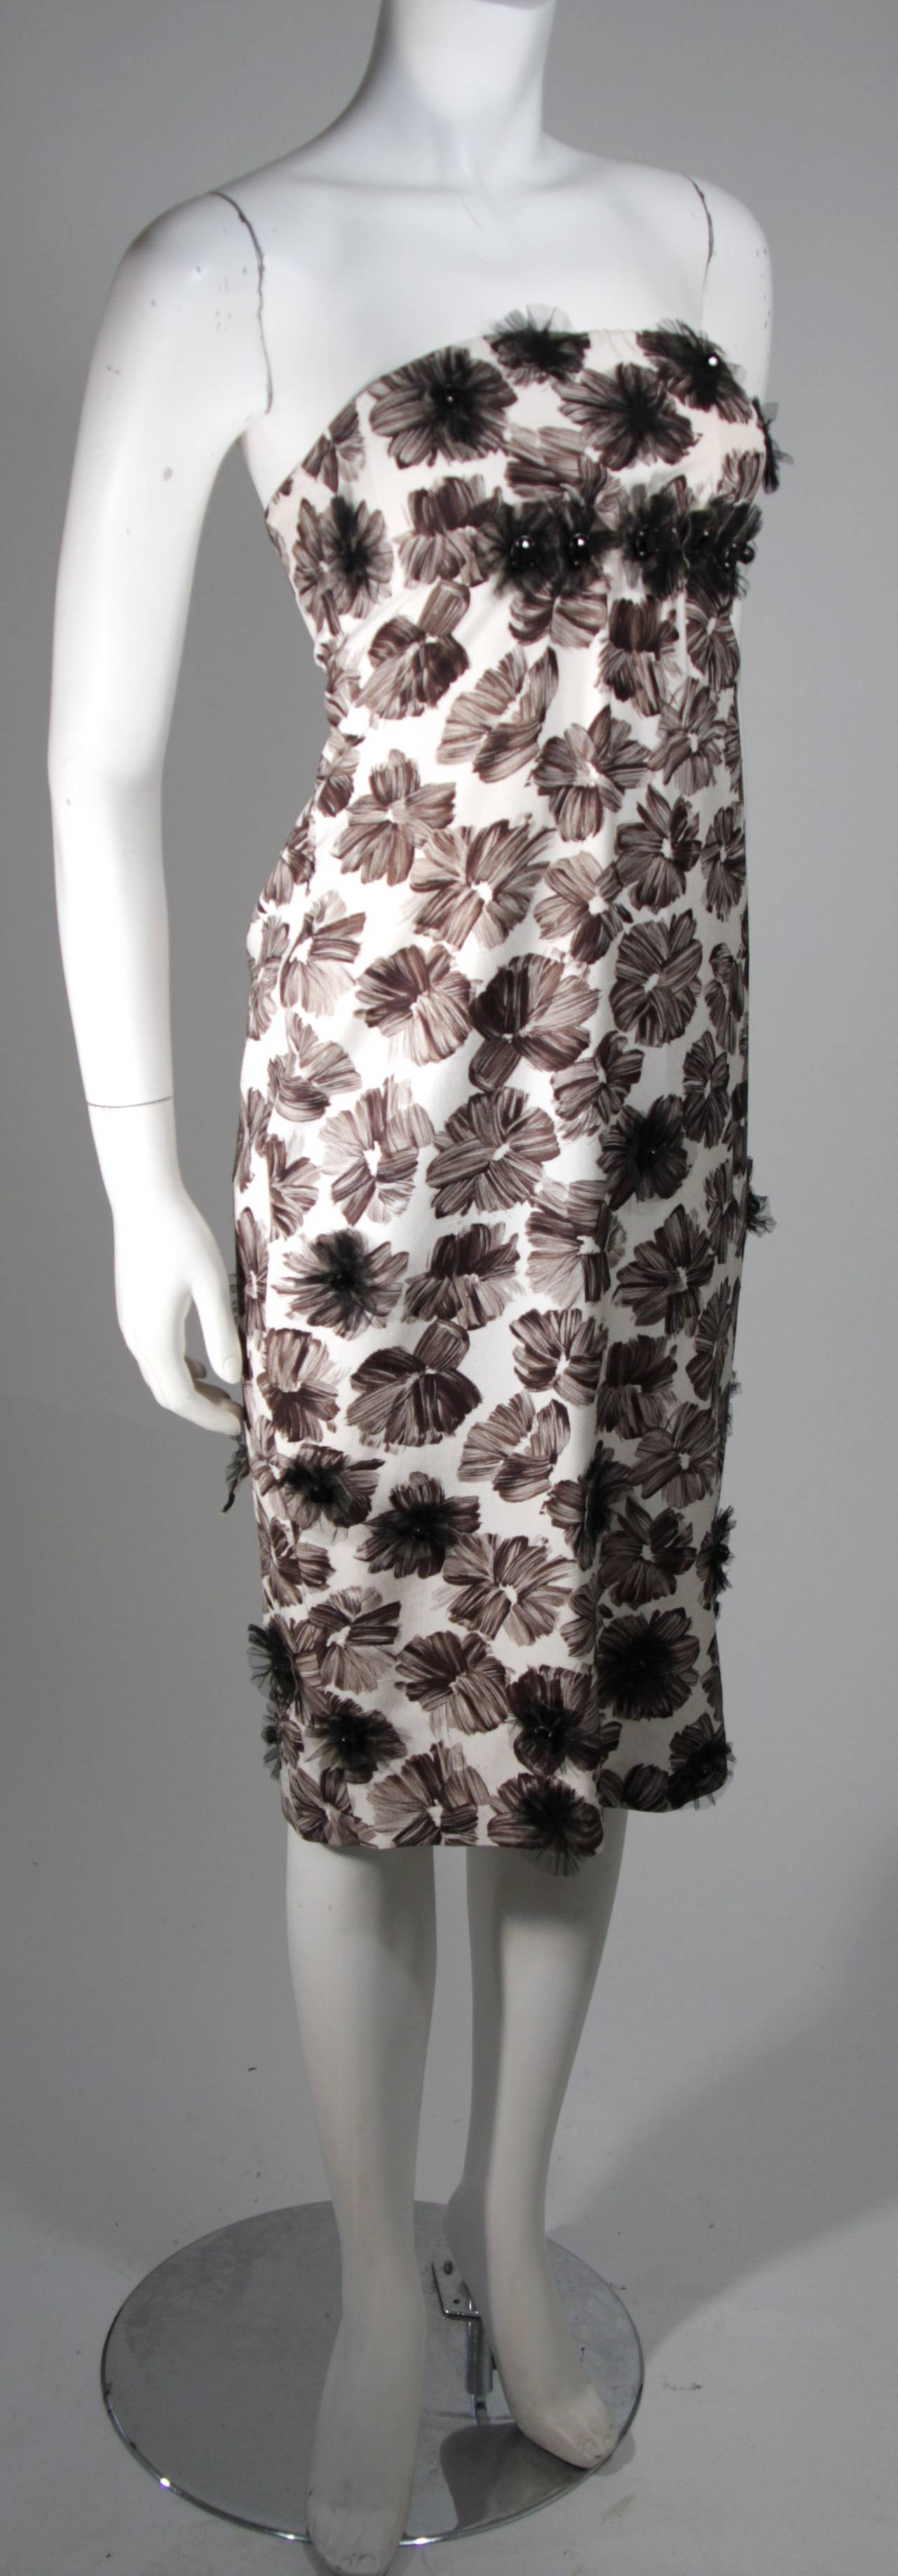 GIAMBATTISTA VALLI White Strapless Floral Print Rhinestone Detail Dress Size 40 In New Condition For Sale In Los Angeles, CA